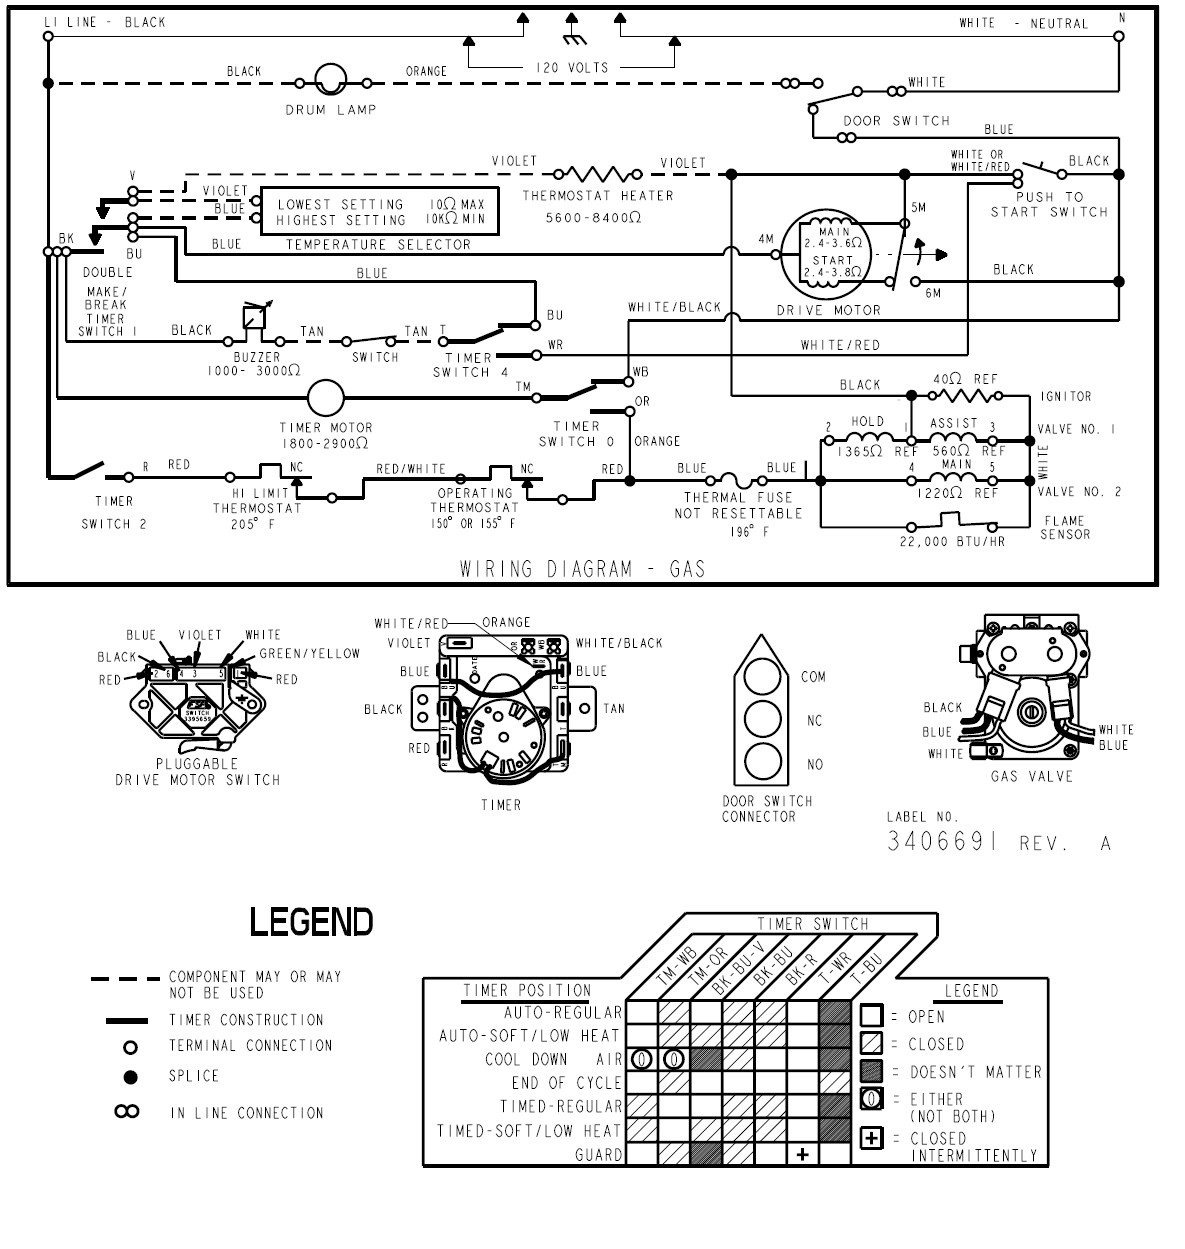 2012-07-17_003305_gas_dryer_schematic_image46353img-or Maytag Dryer Schematic on